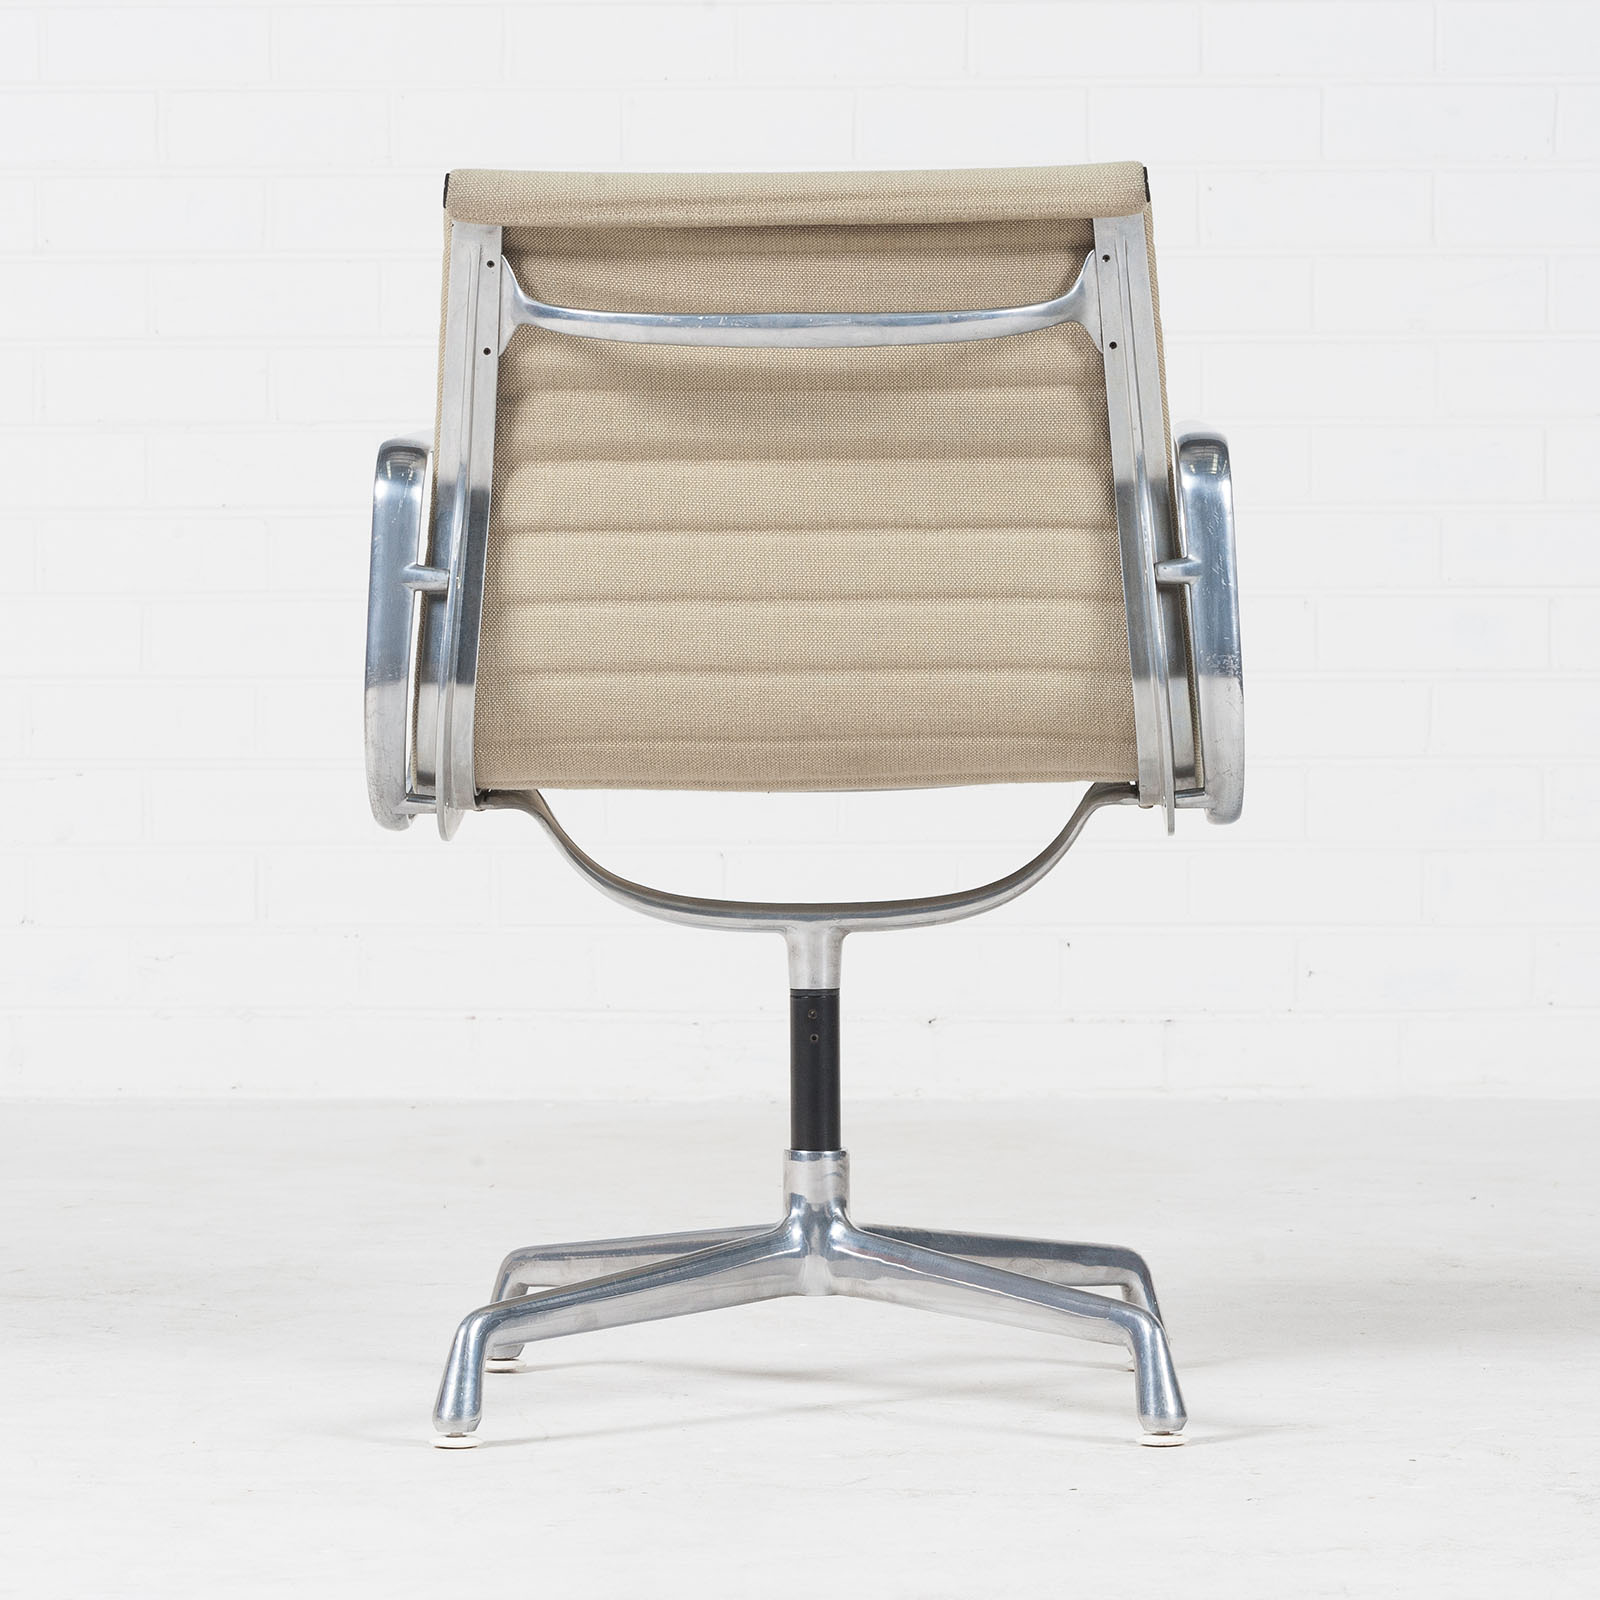 Eames Ea 108 Chair By Charles & Ray Eames For Vitra 1950s America 06